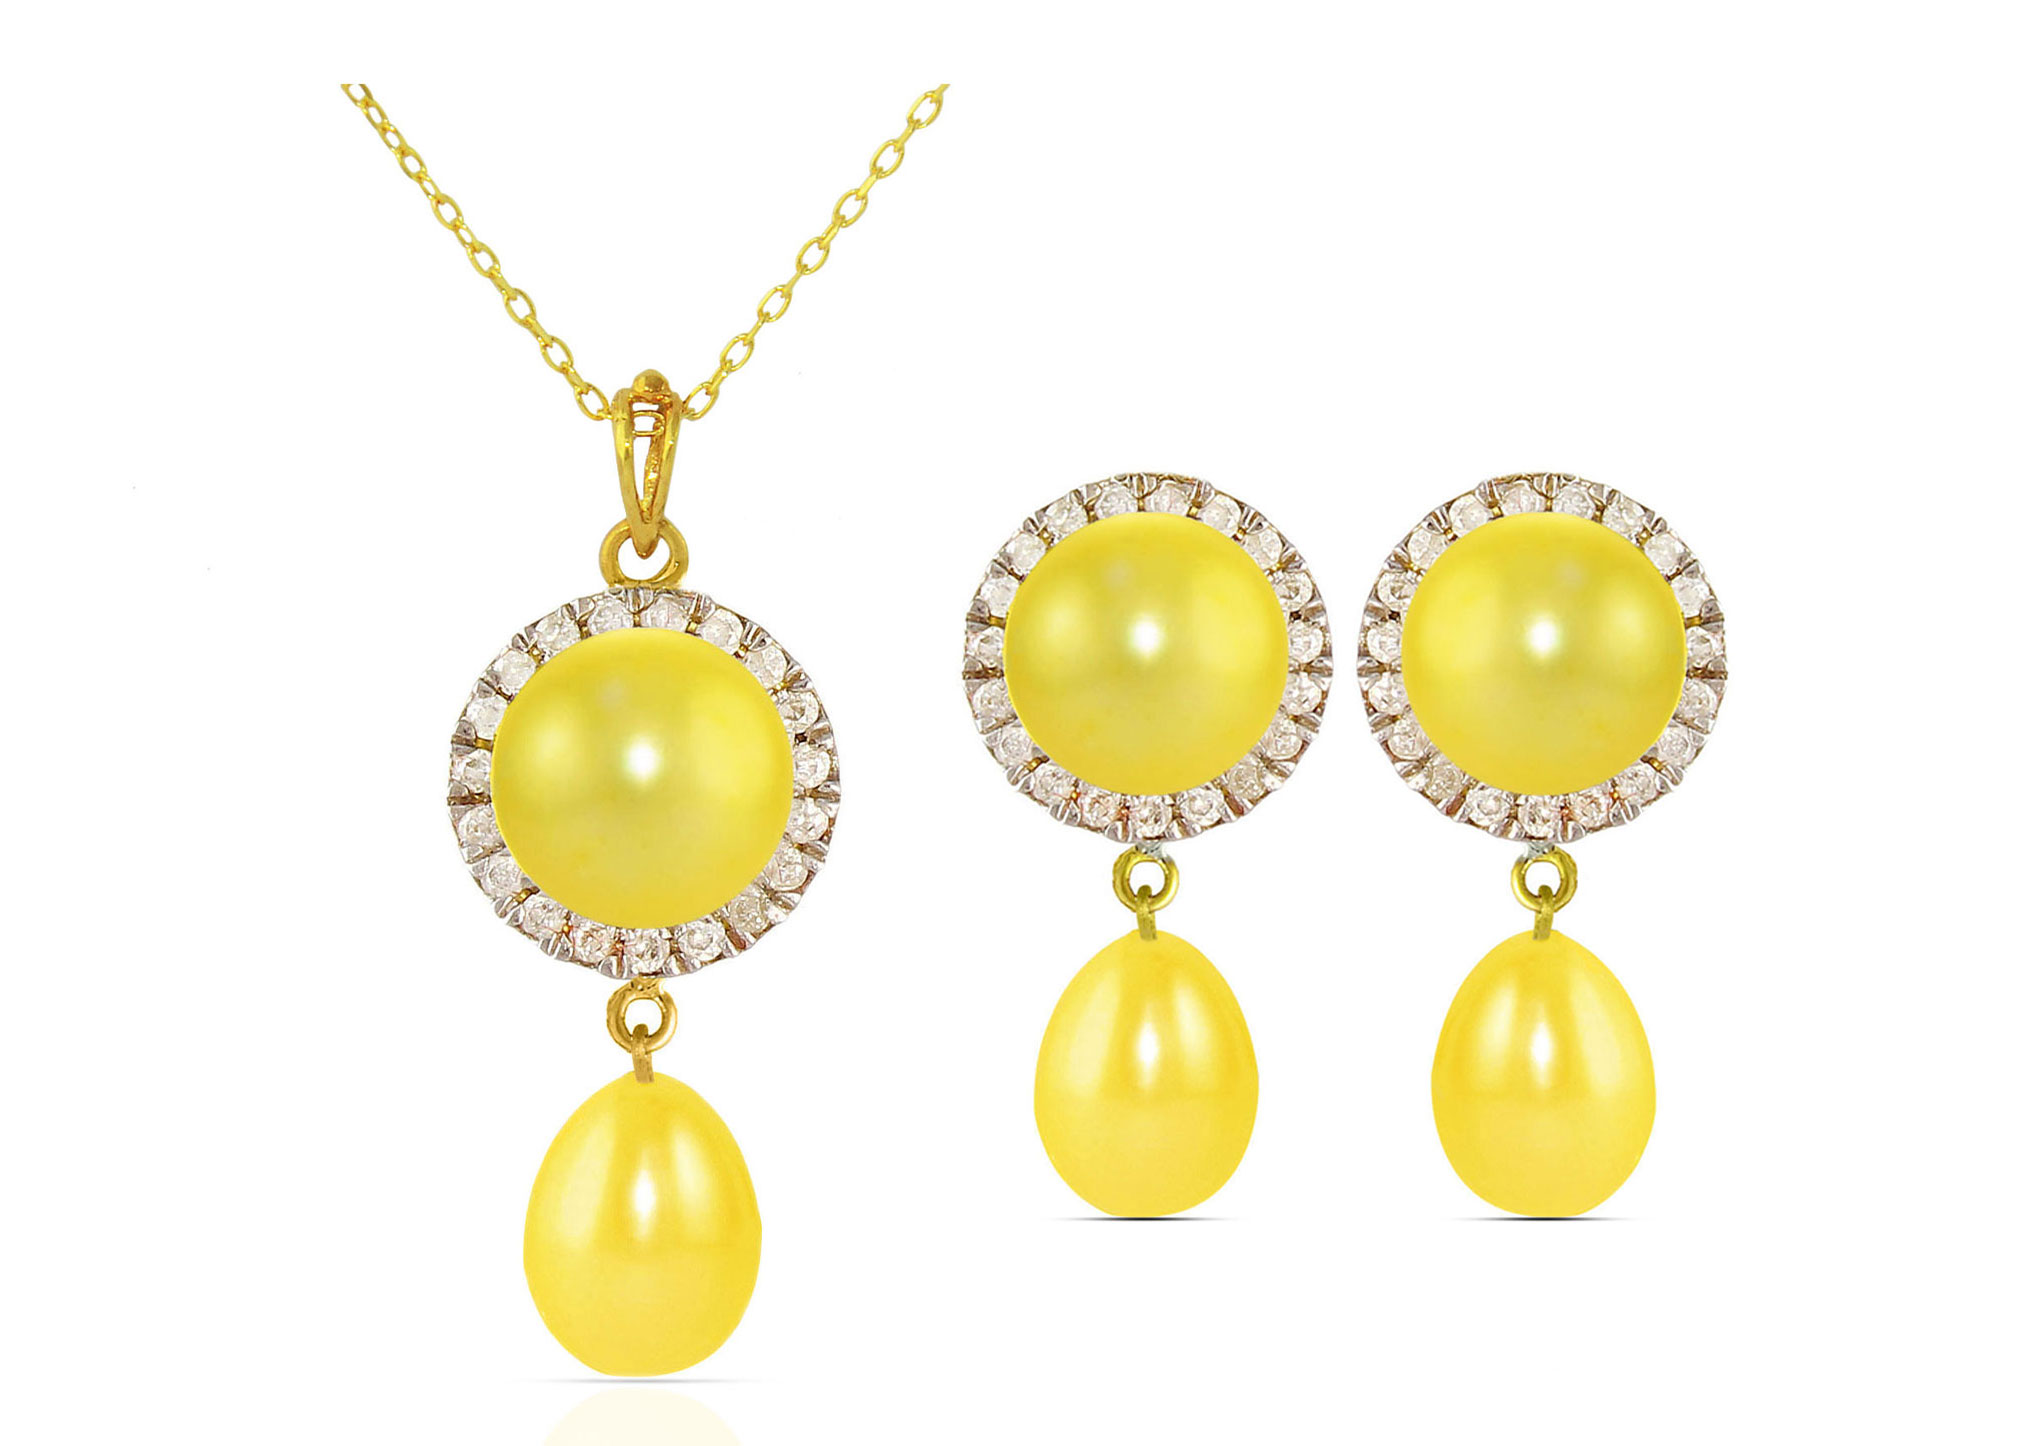 Vera Perla 18K Solid Gold 0.30ct Genuine Diamonds and 6-7mm Golden Pearl Jewelry Set, 2 Pcs